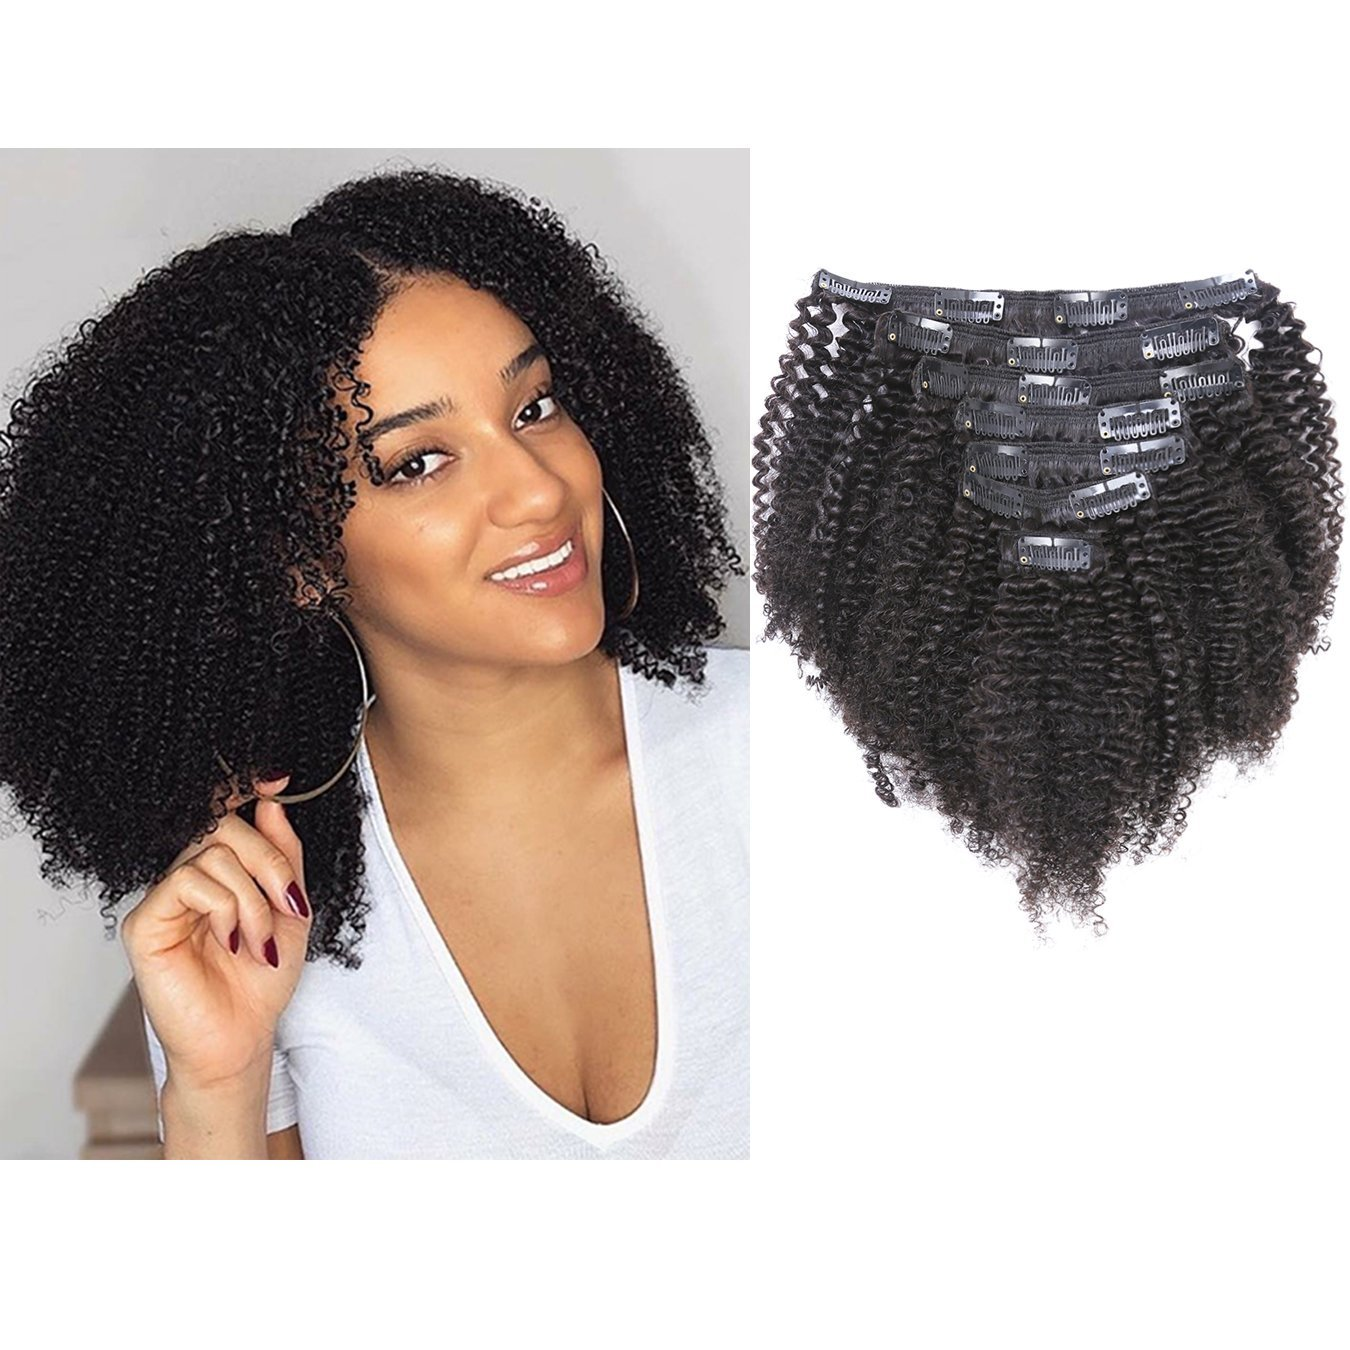 Anrosa Thick Human Hair Extensions Kinkys Curly Clip ins Natural Black Hair Color 1B Afro Kinky Curly Clip in Hair Extensions Real Virgin Remy Hair 14 Inch 120 Gram 3C 4A Type for Black Women